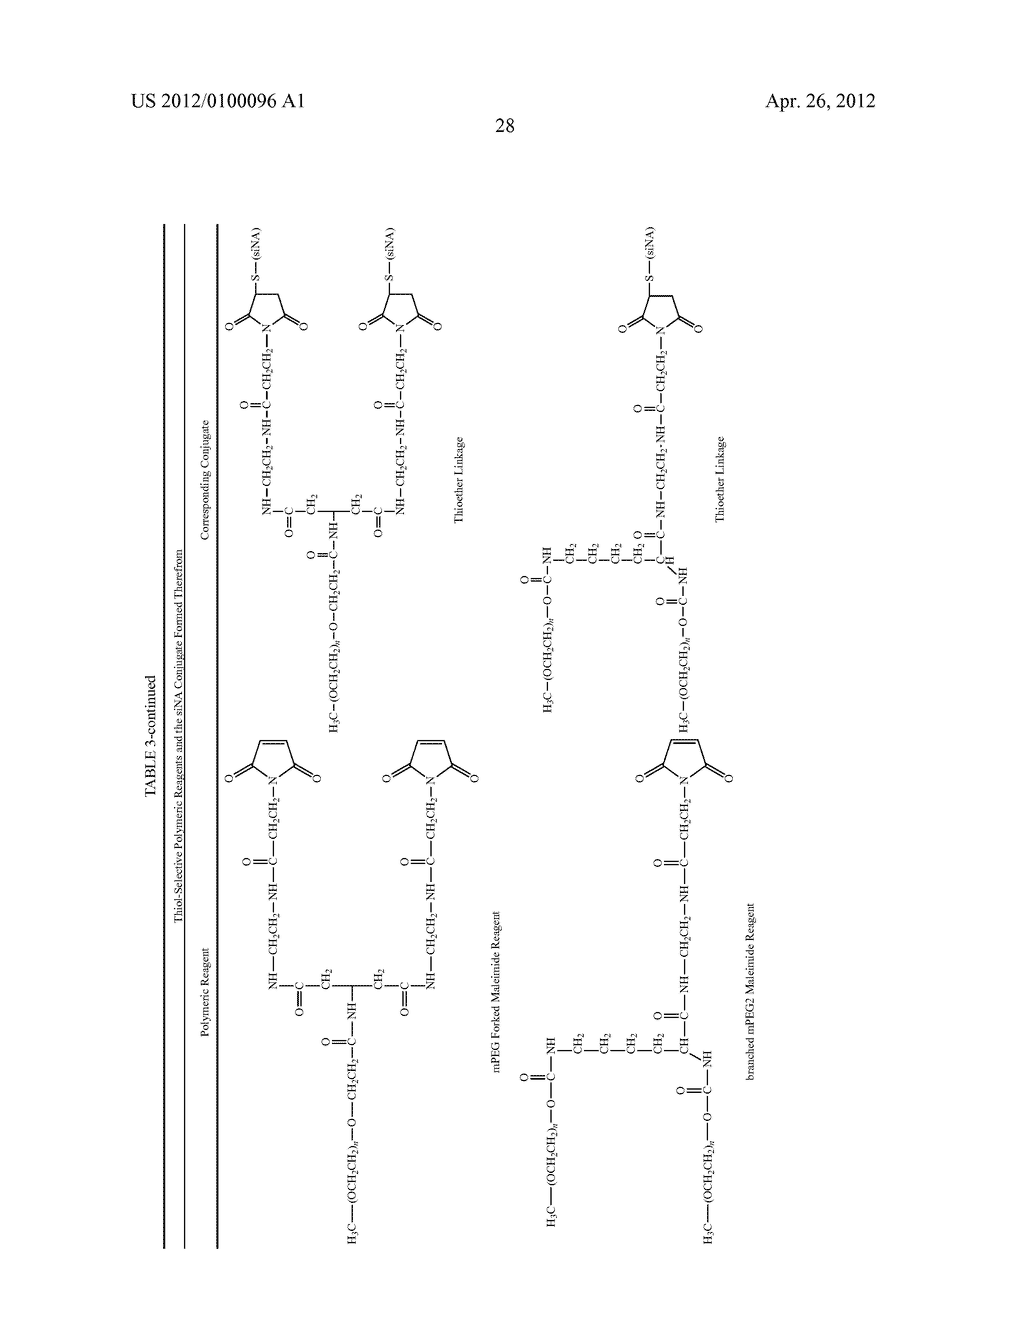 CONJUGATES PF SMALL-INTERFERING NUCLEIC ACIDS - diagram, schematic, and image 48